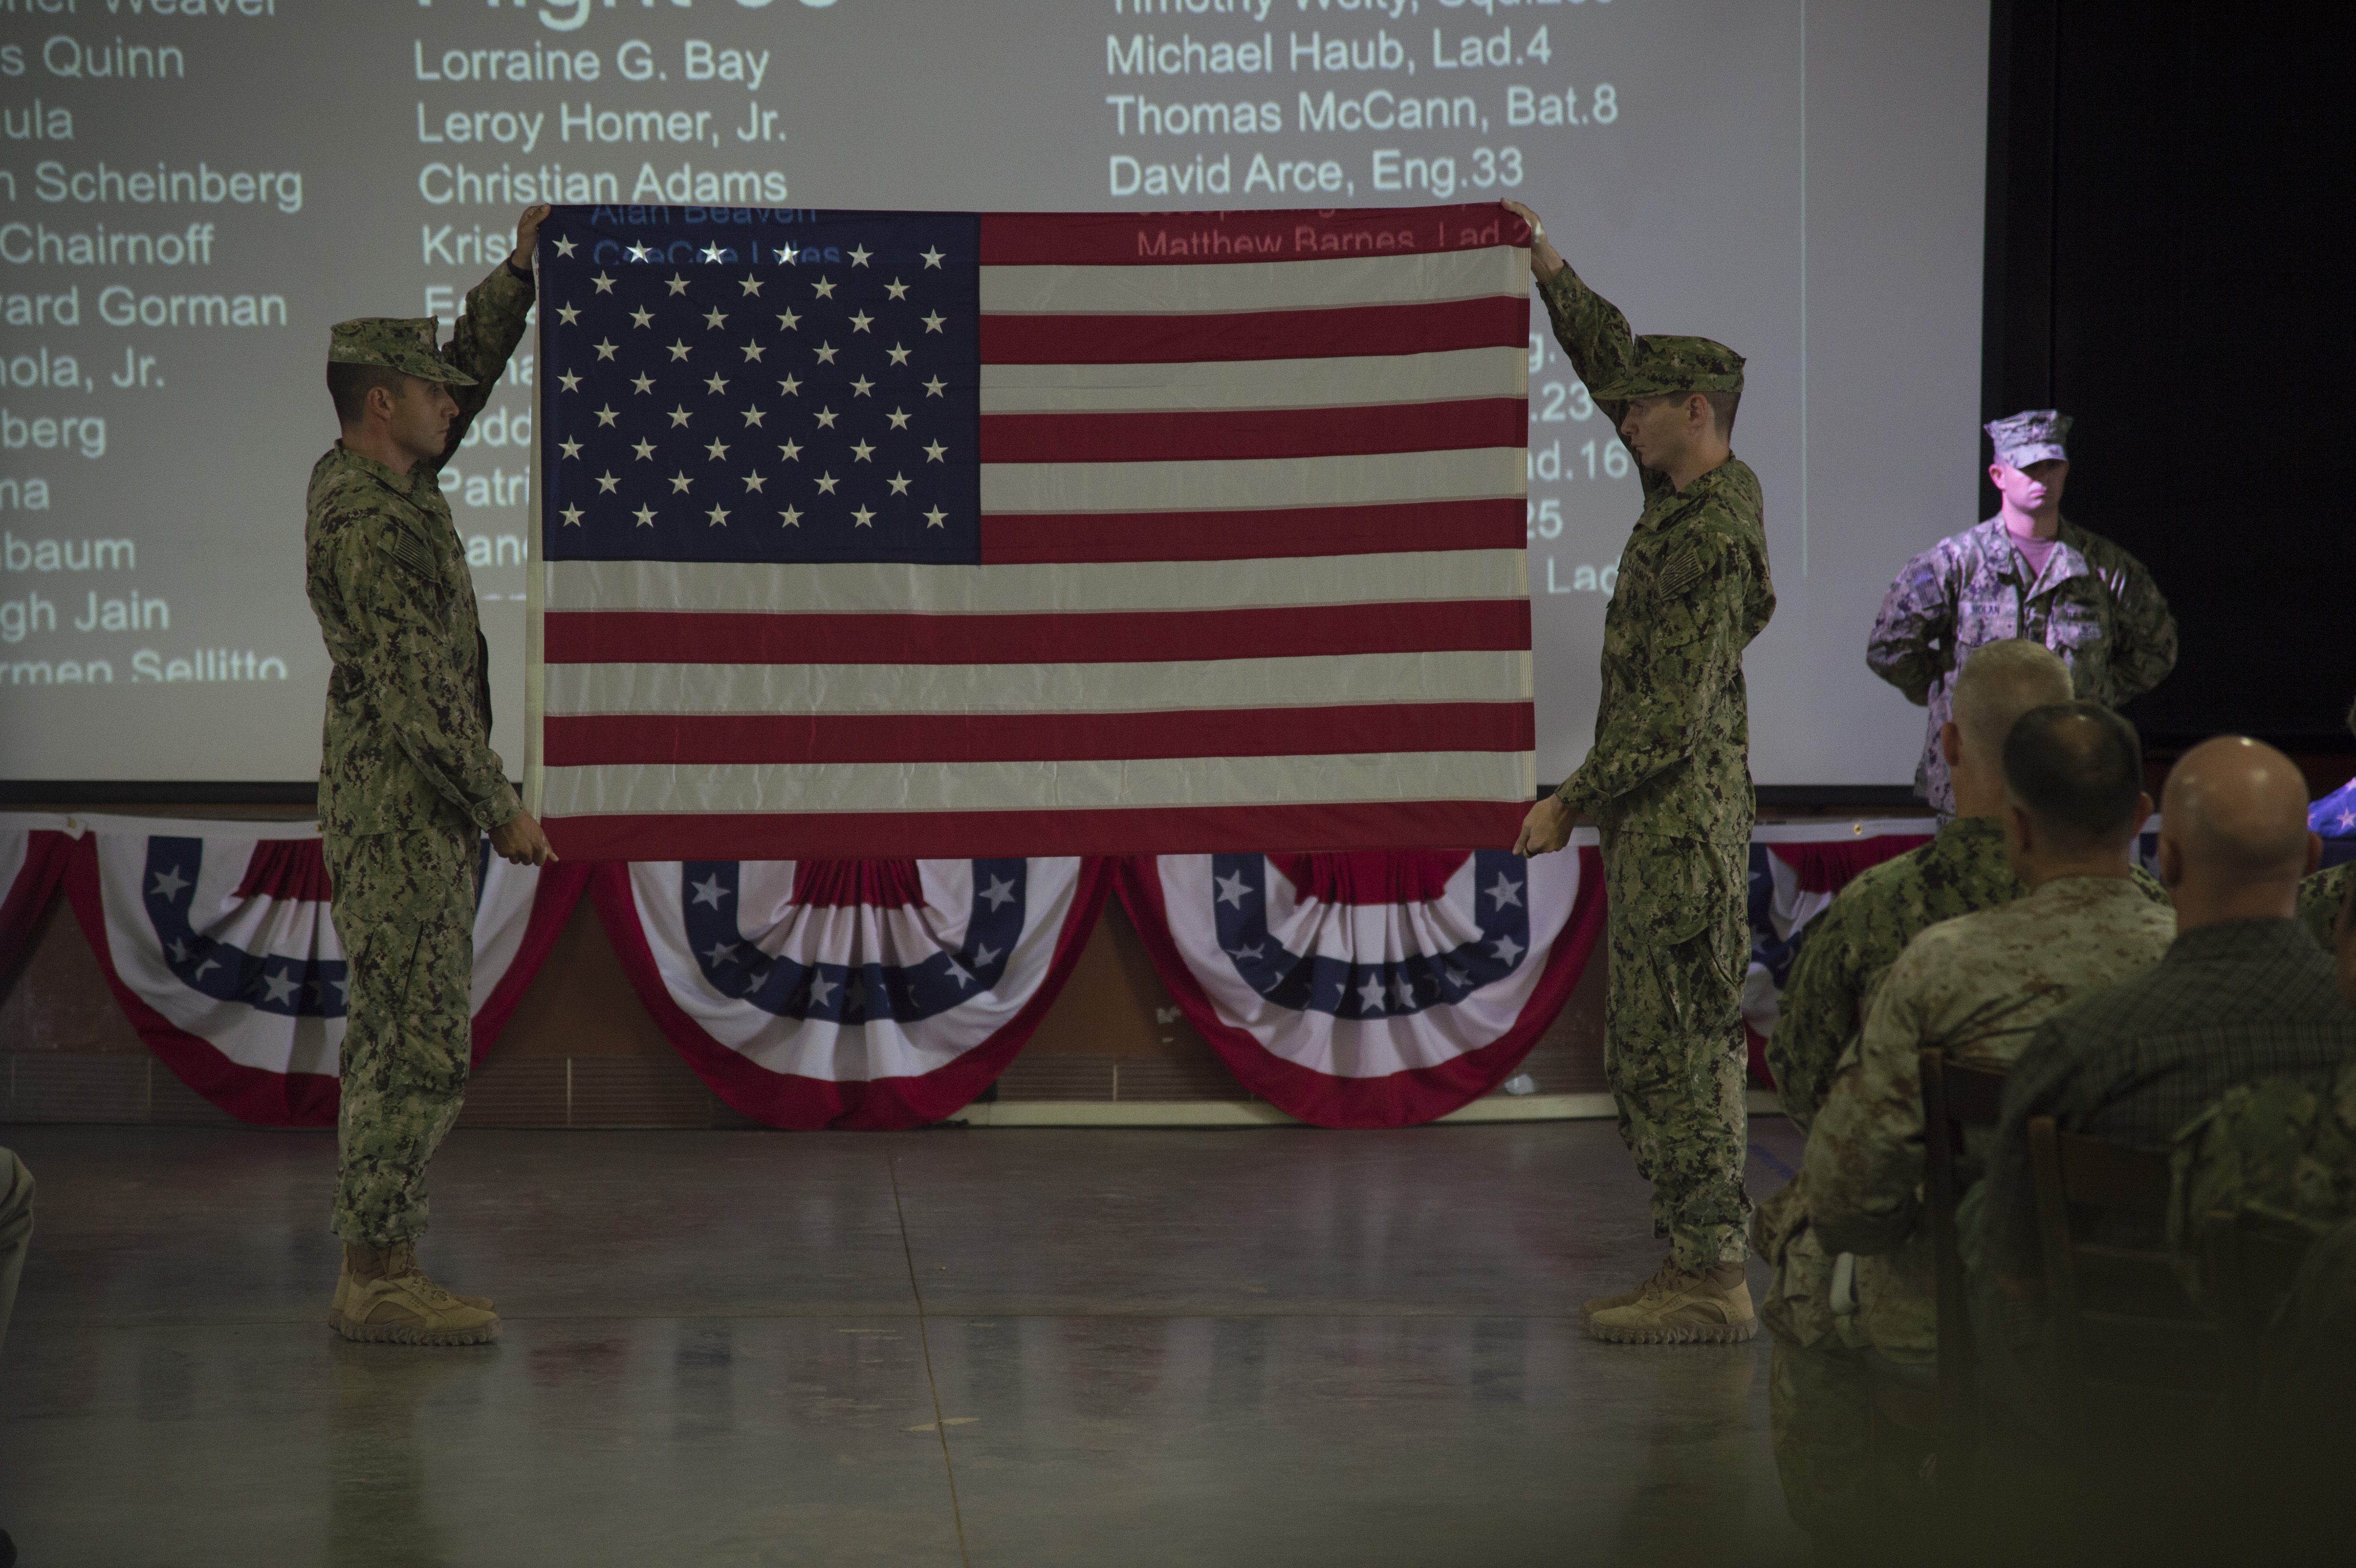 U.S. Navy Sailors display an American flag to the crowd before folding and giving it to U.S. Army Maj. Eric Torrado during a 9/11 remembrance ceremony held Sept. 11, 2016, at Camp Lemonnier, Djibouti. Torrado is part of the New York Army National Guard and works for the New York City Police Department when he is not performing military duties. The ceremony was organized and conducted by Fiscal Year 2017 Chief Petty Officer selectees from Camp Lemonnier and Combined Joint Task Force - Horn of Africa.  (U.S. Air Force photo by Staff Sgt. Eric Summers Jr.)